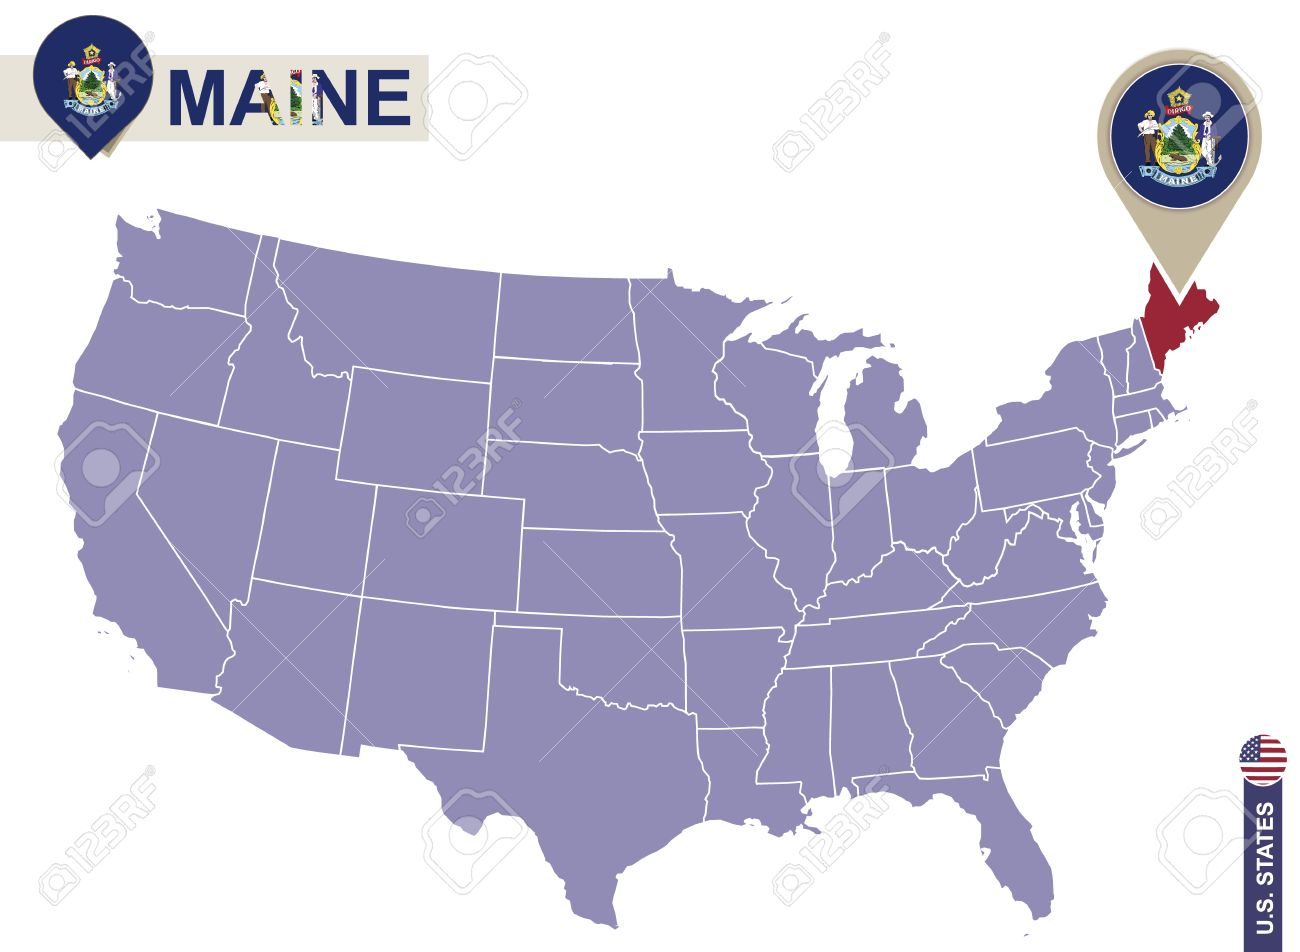 Maine On Map Of Usa Maine State On Usa Map Maine Flag And Map Us - Maine state usa map